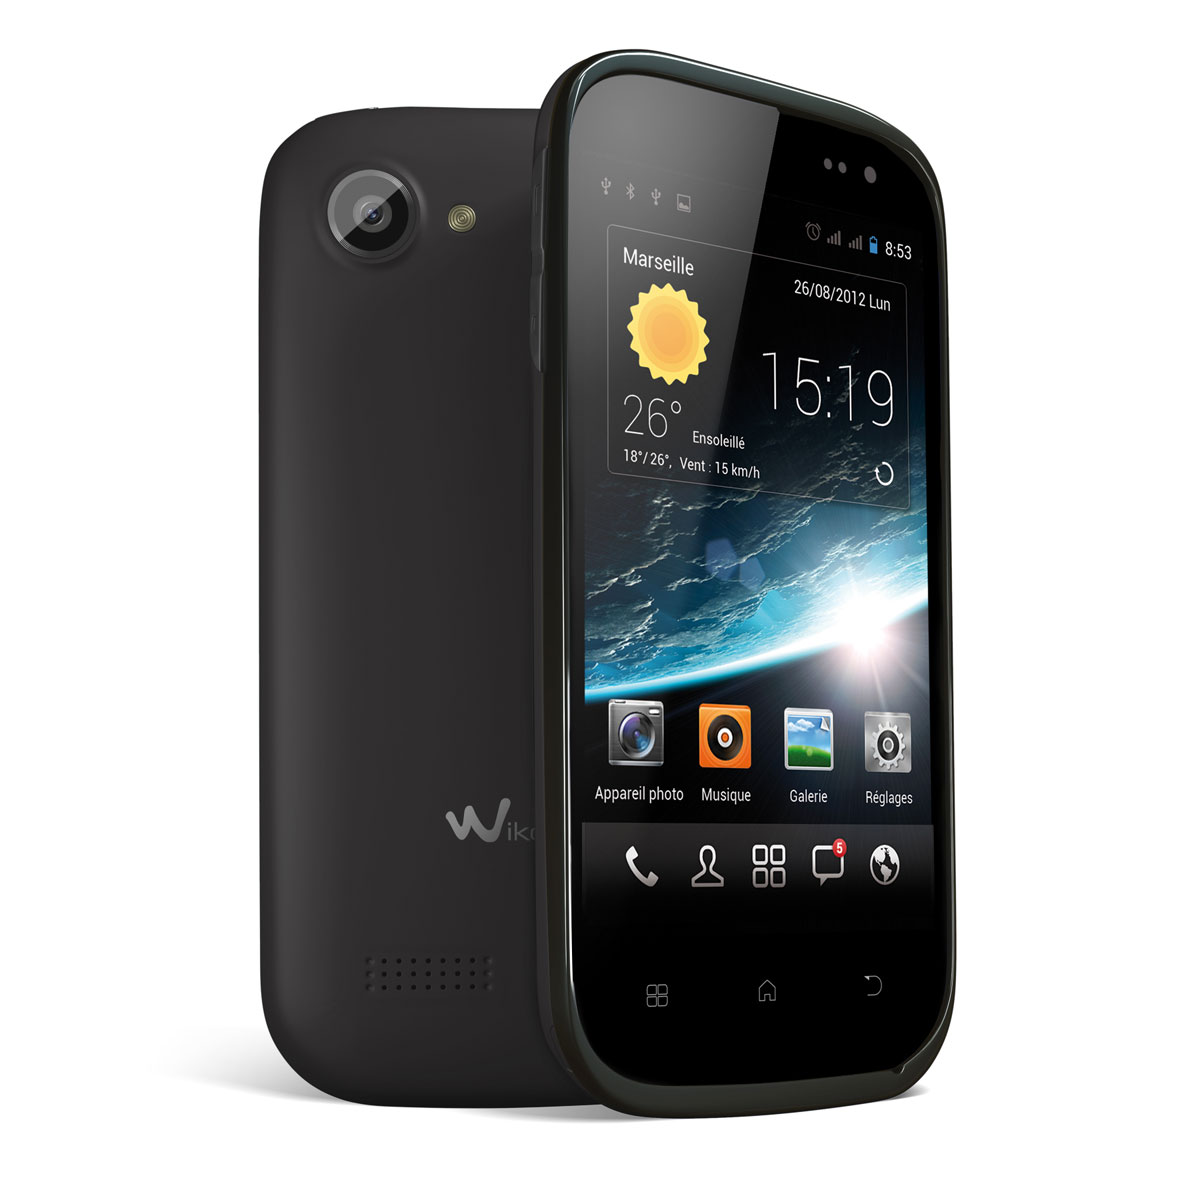 wiko cink slim noir mobile smartphone wiko sur ldlc. Black Bedroom Furniture Sets. Home Design Ideas